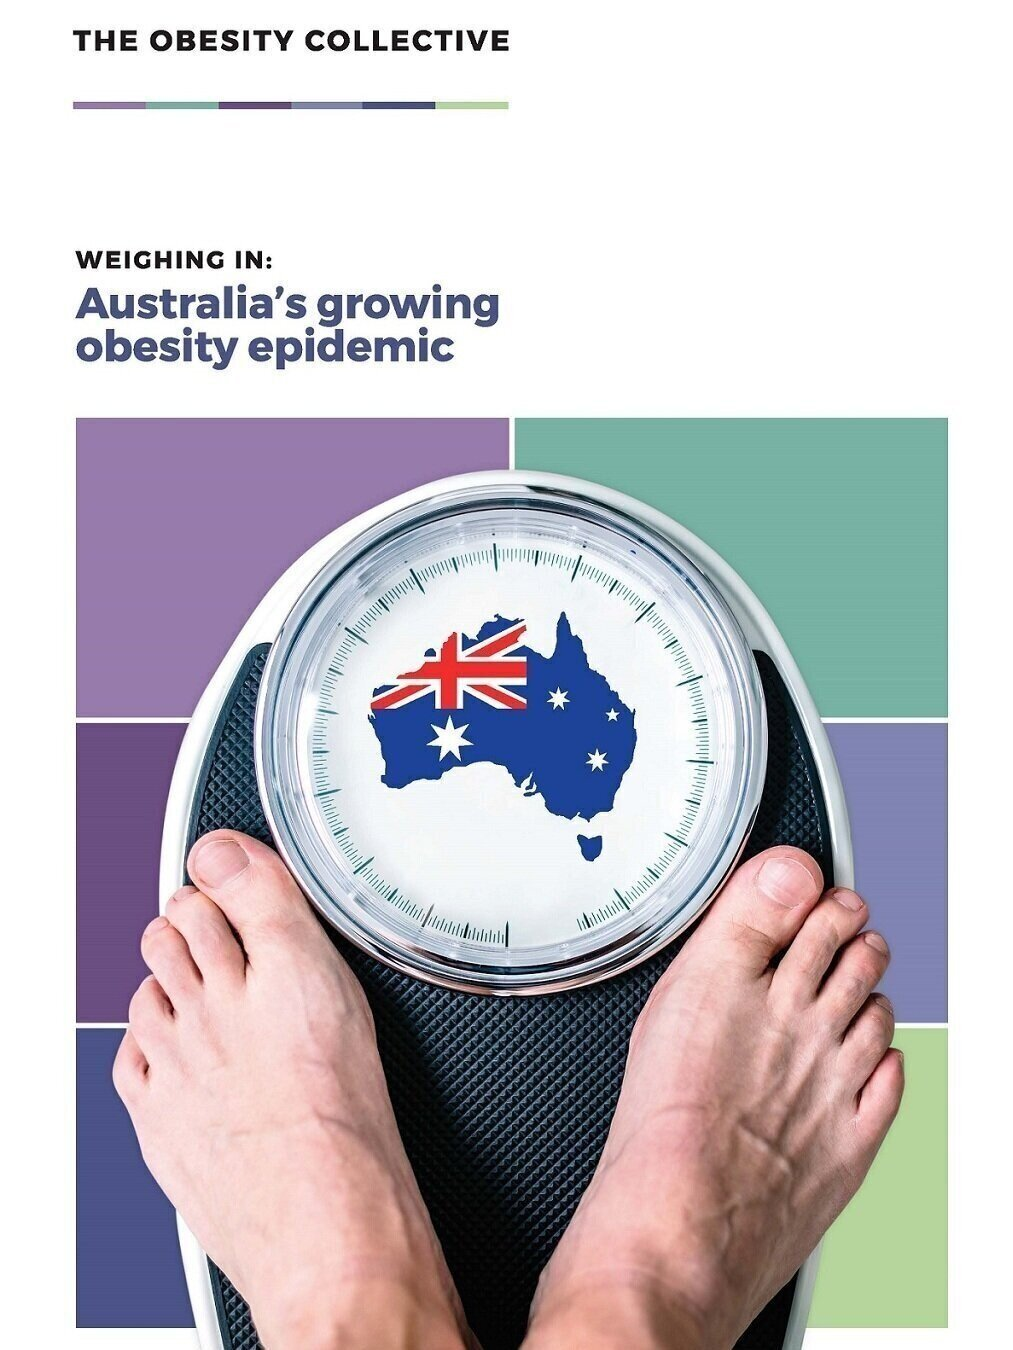 Australia's growing obesity epidemic - Our latest report.The alarming new study shows there are 900,000 more people living with obesity today, compared with just 3 years ago. If the current growth rate continues, within 10-years, 4 in 10 Australian adults will be living with obesity.